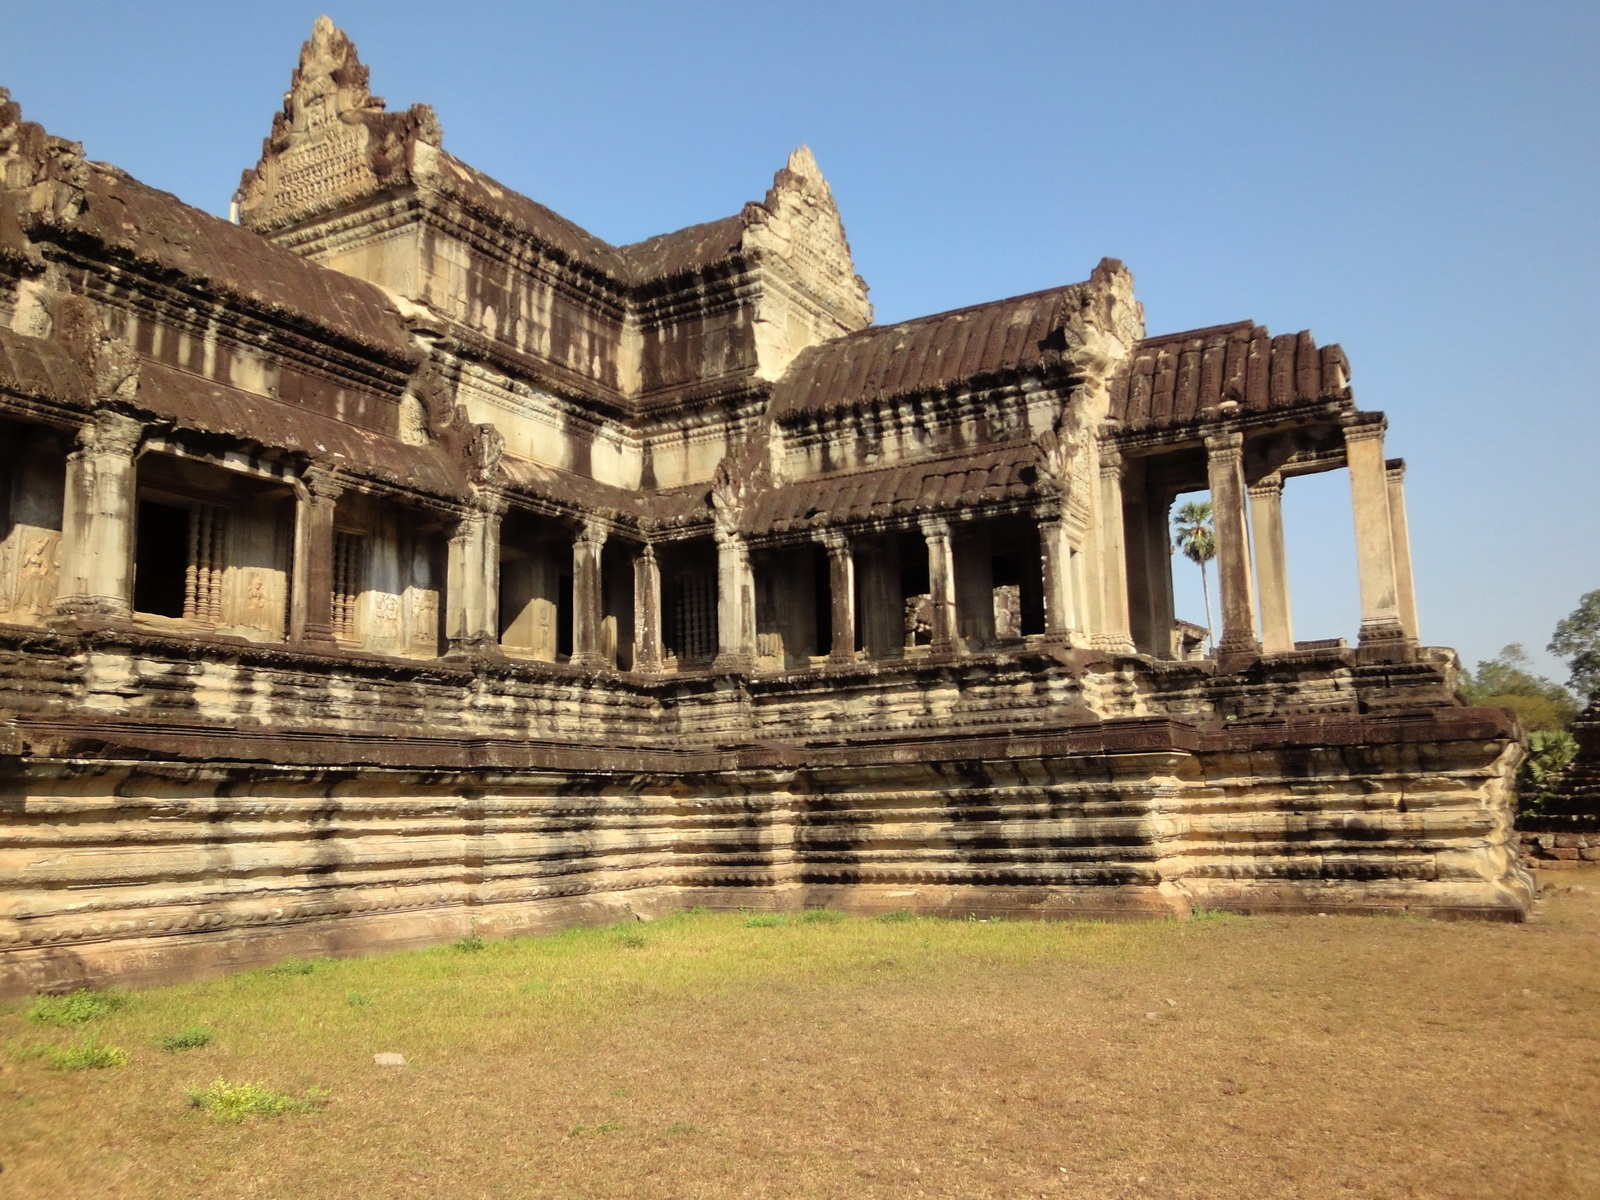 Angkor Wat Khmer architecture eastern gallery entrance 05